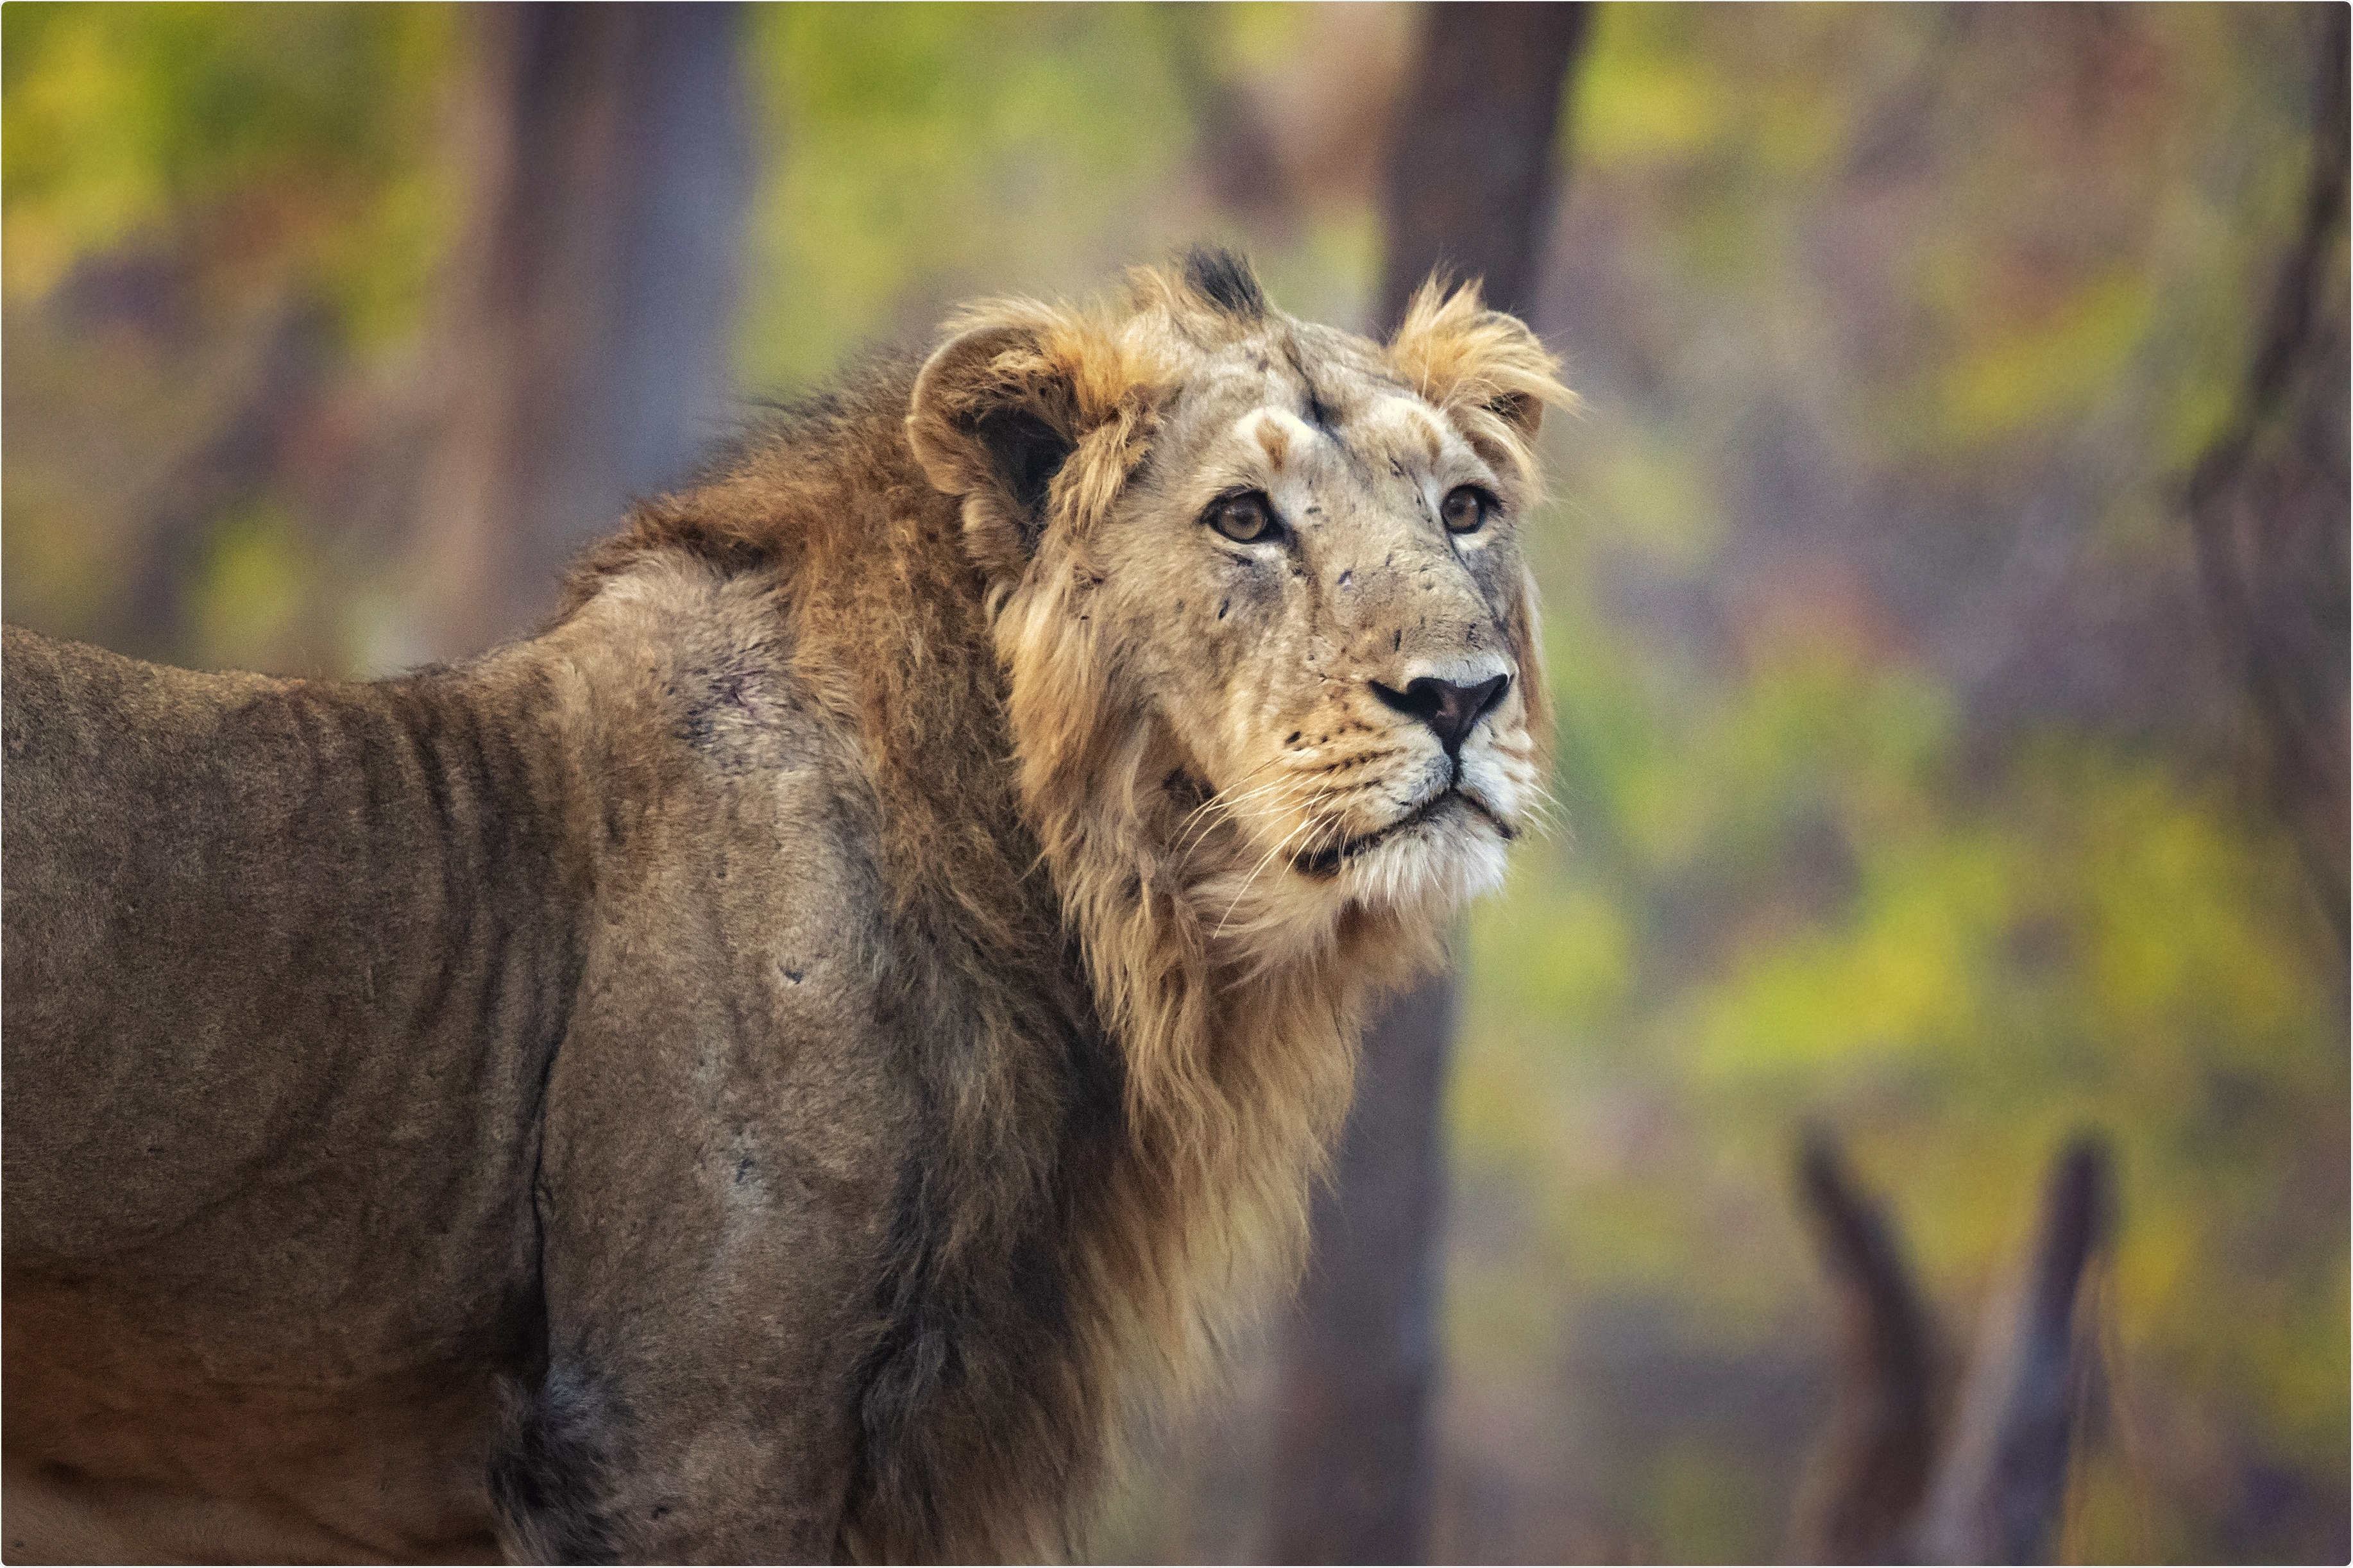 Study: Natural infection of SARS-CoV-2 delta variant in Asiatic lions (Panthera leo persica) in India. Image Credit: Milan Zygmunt / Shutterstock